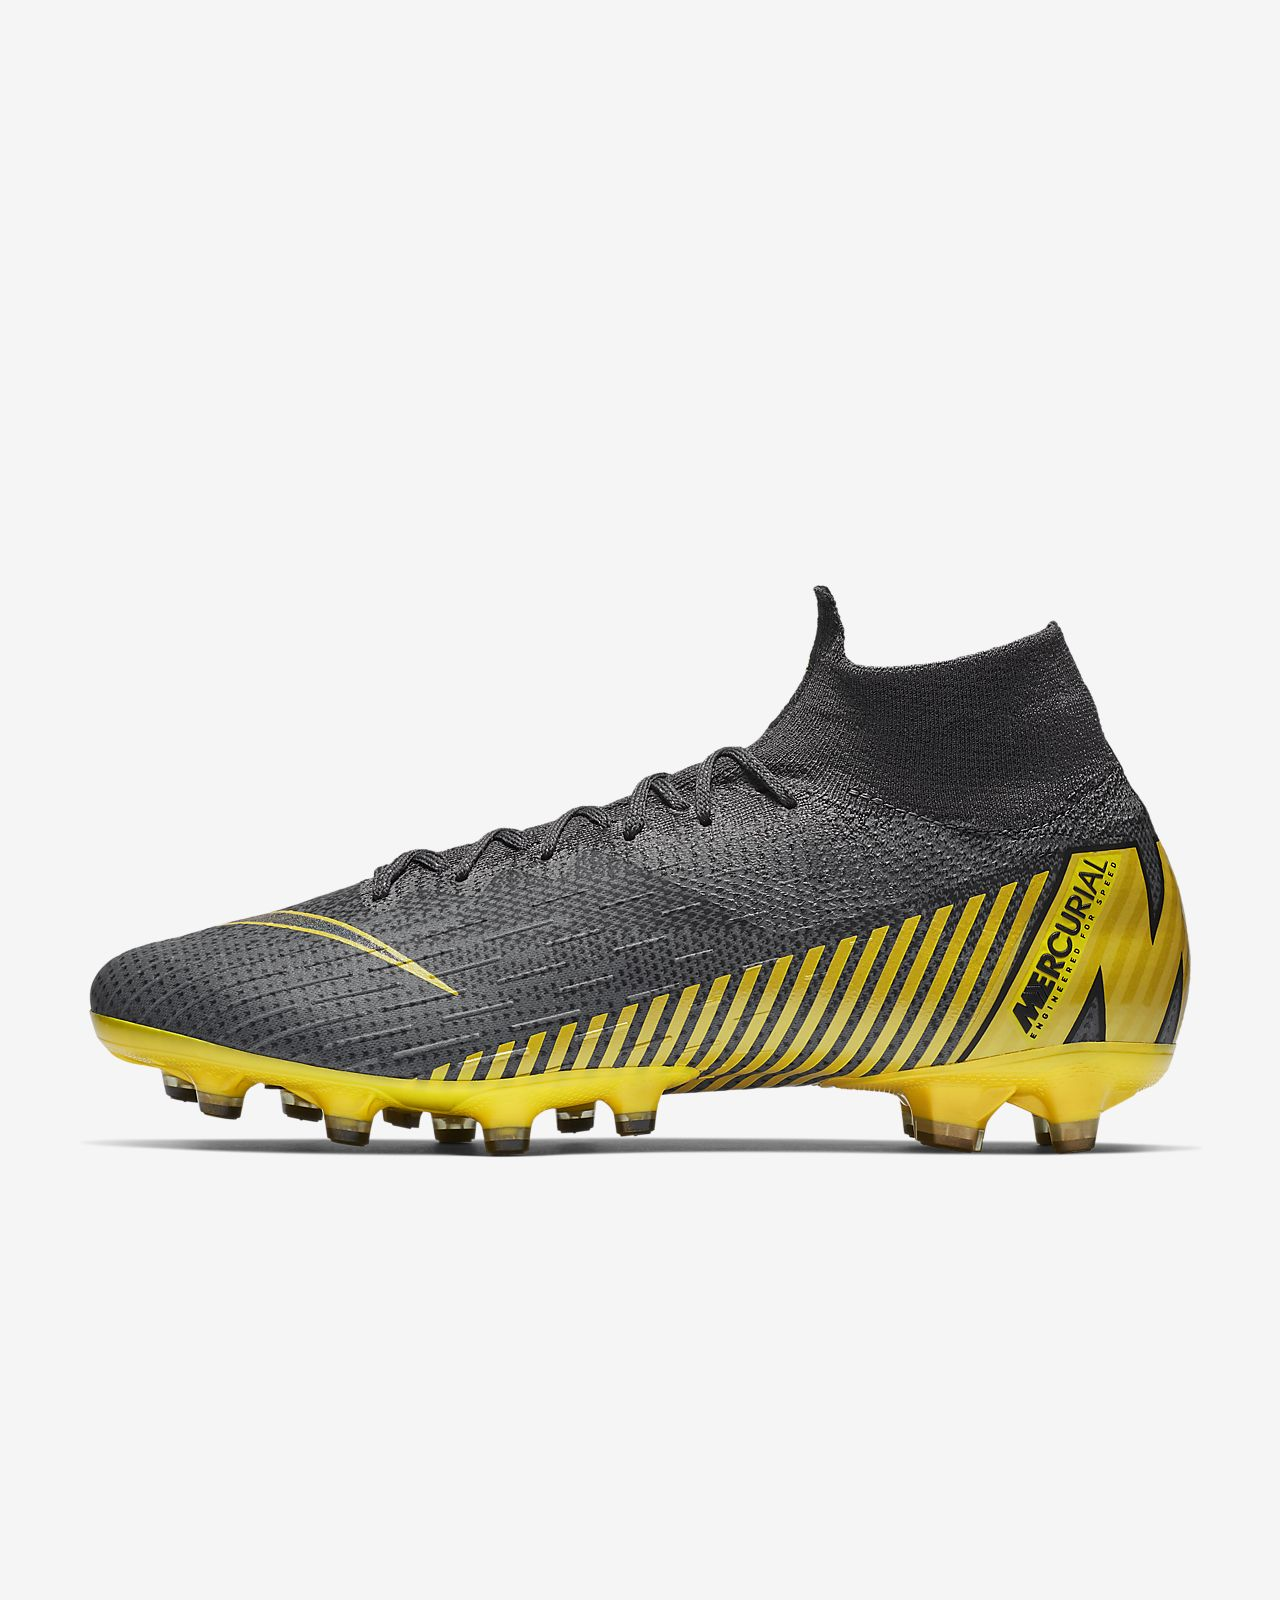 on sale 7477a f4485 Nike Mercurial Superfly 360 Elite AG-PRO